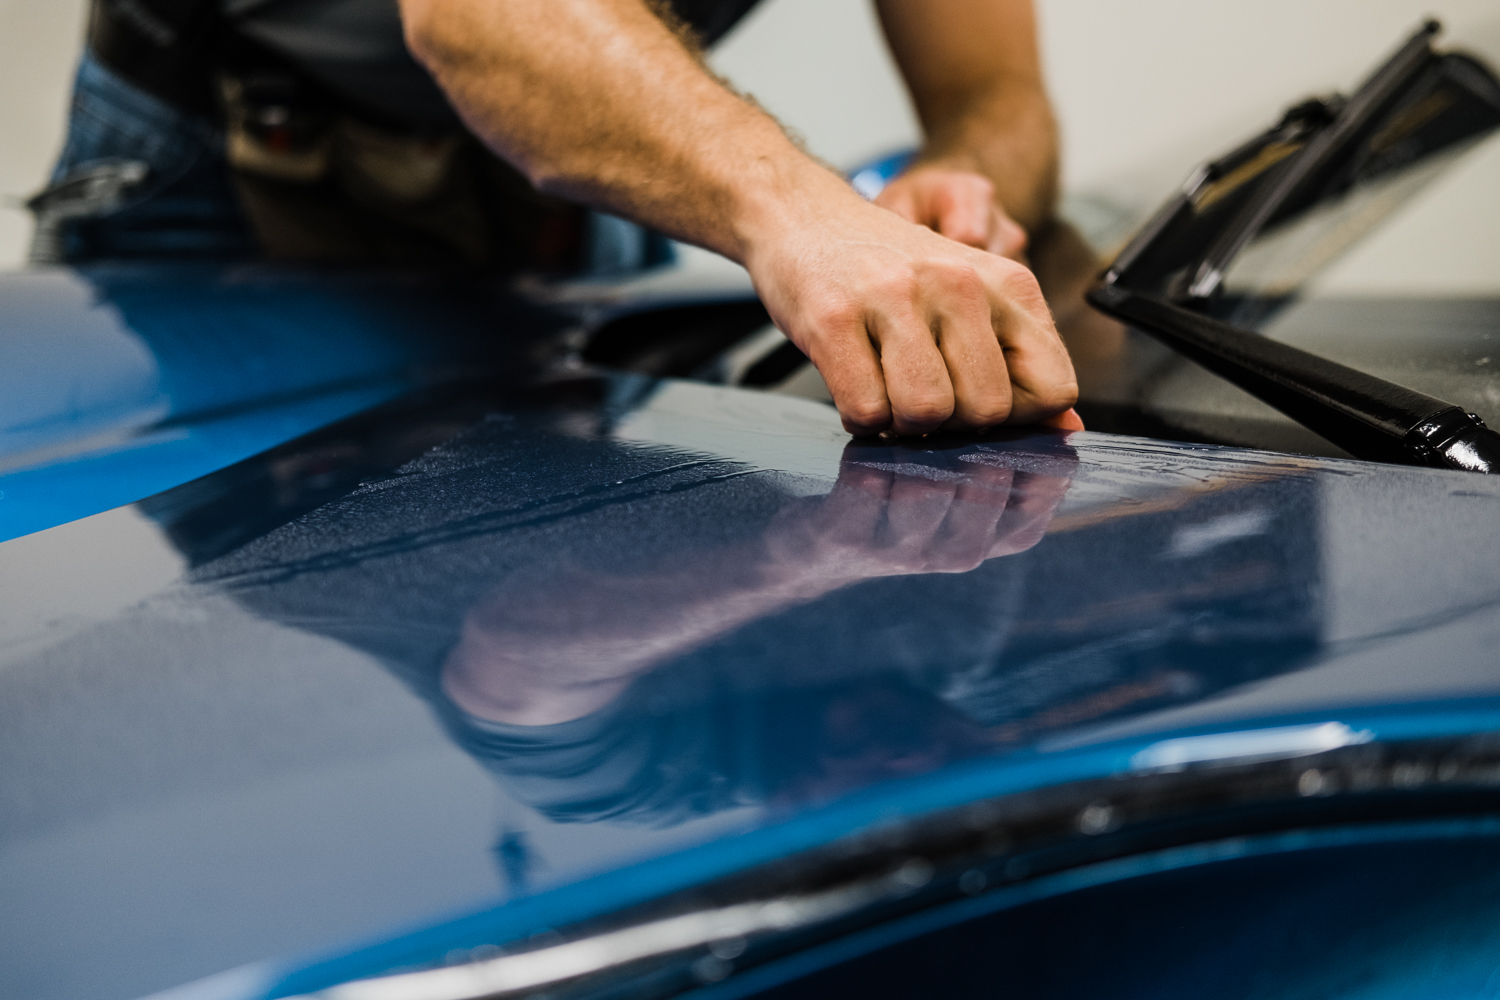 Ford GT-XPEL Ultimate Paint Protection Film-Full-body Wrap-Paint Protection Film-Clear Bra-Ford Performance-127.jpg